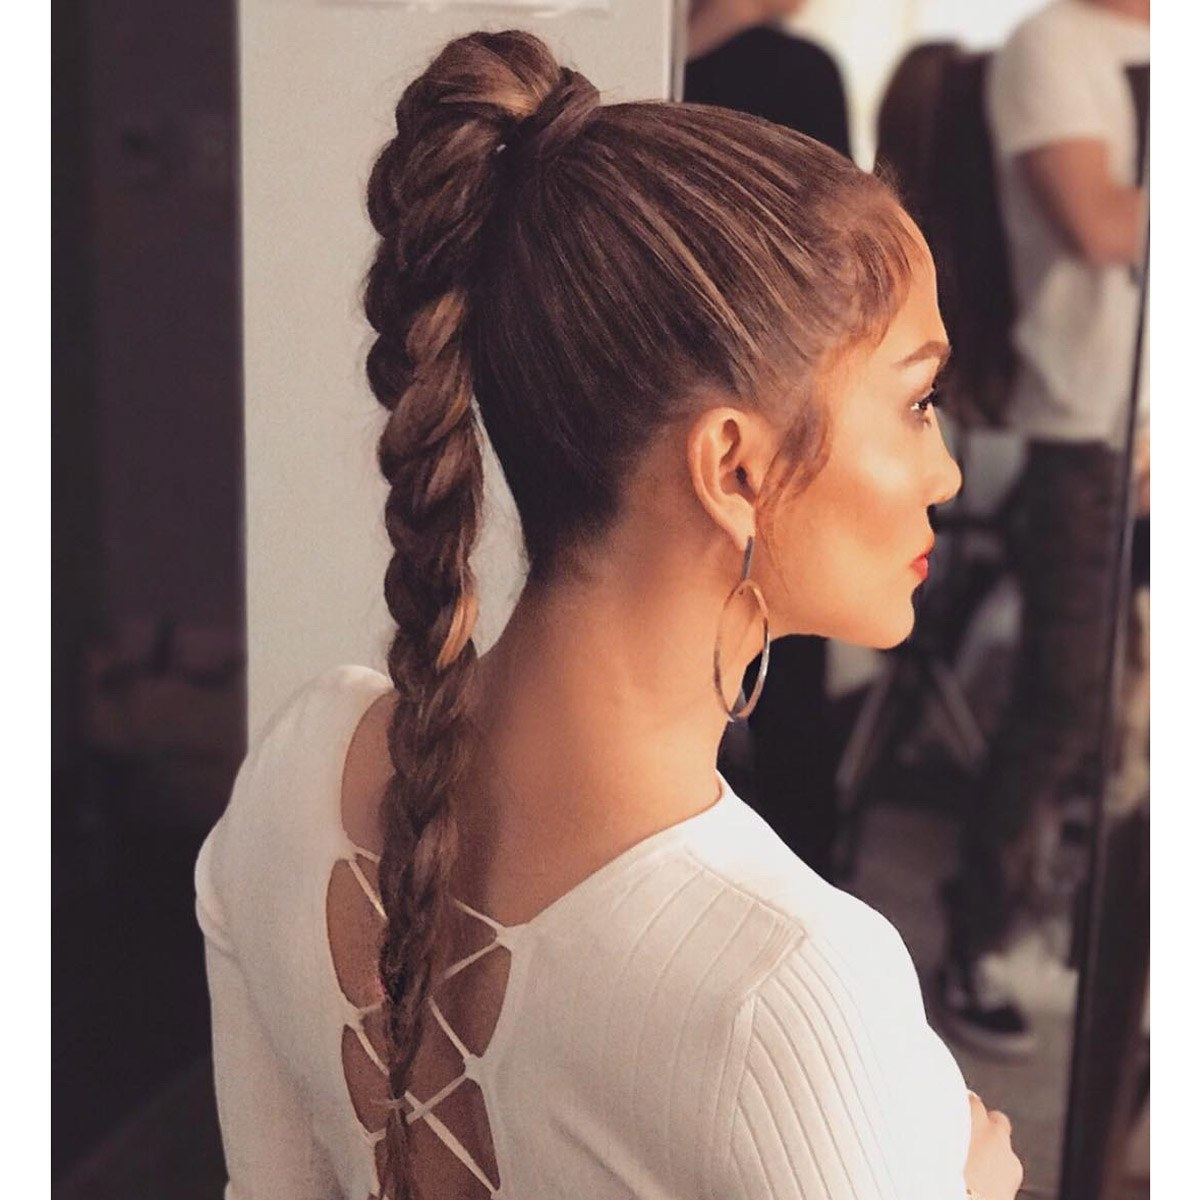 37 Cool Ponytail Hairstyles To Try In (View 3 of 20)